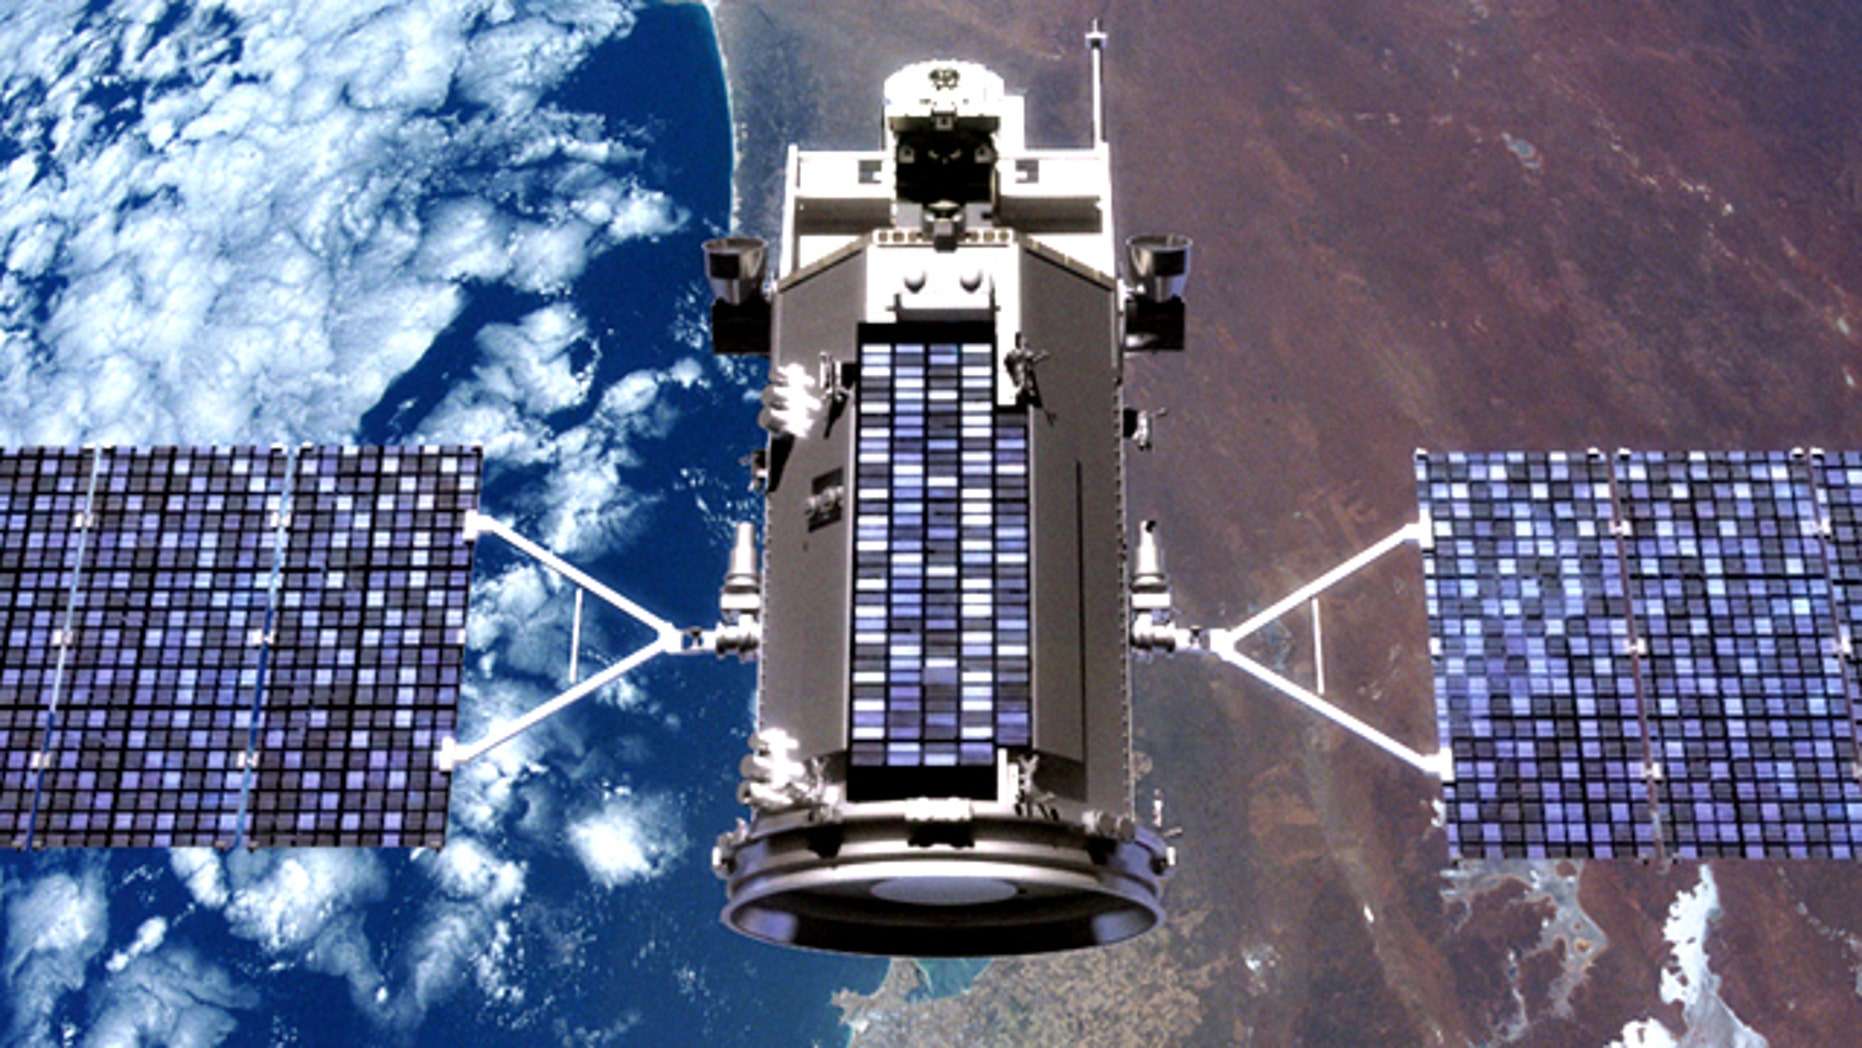 An illustration of the Glory satellite in orbit over the Earth.